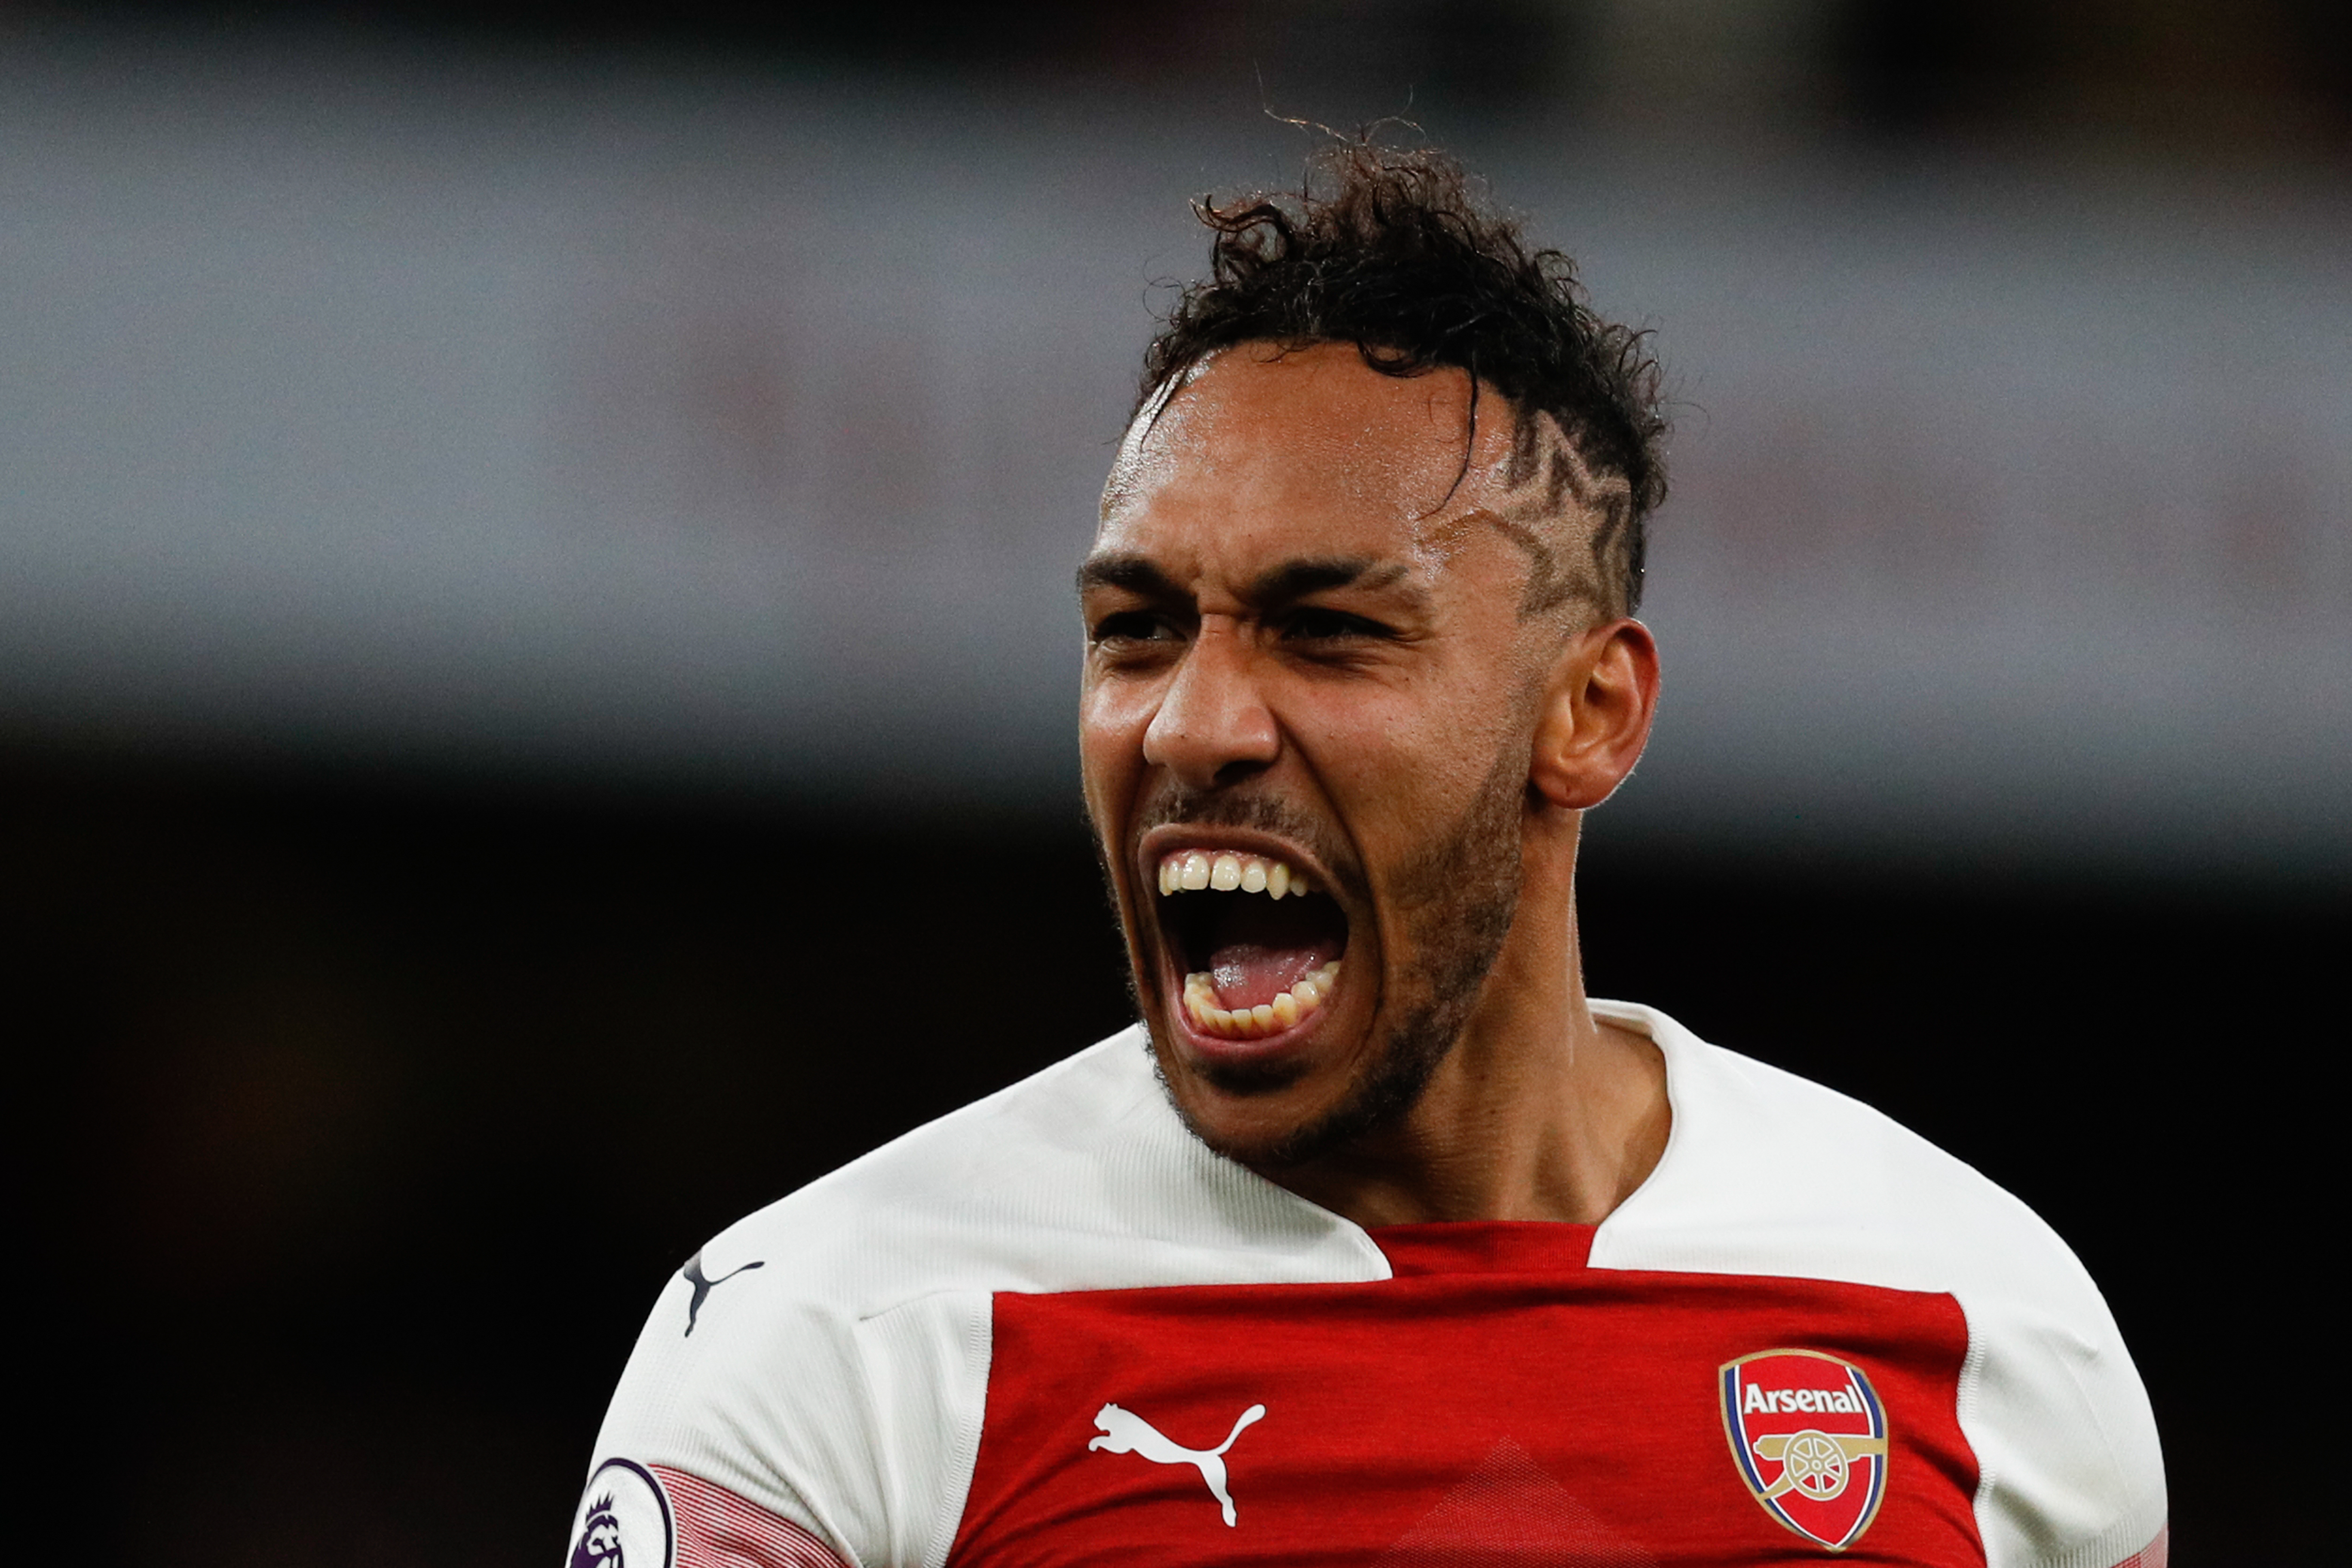 Arsenal's Gabonese striker Pierre-Emerick Aubameyang celebrates on the pitch after the English Premier League football match between Arsenal and Tottenham Hotspur at the Emirates Stadium in London on December 2, 2018.